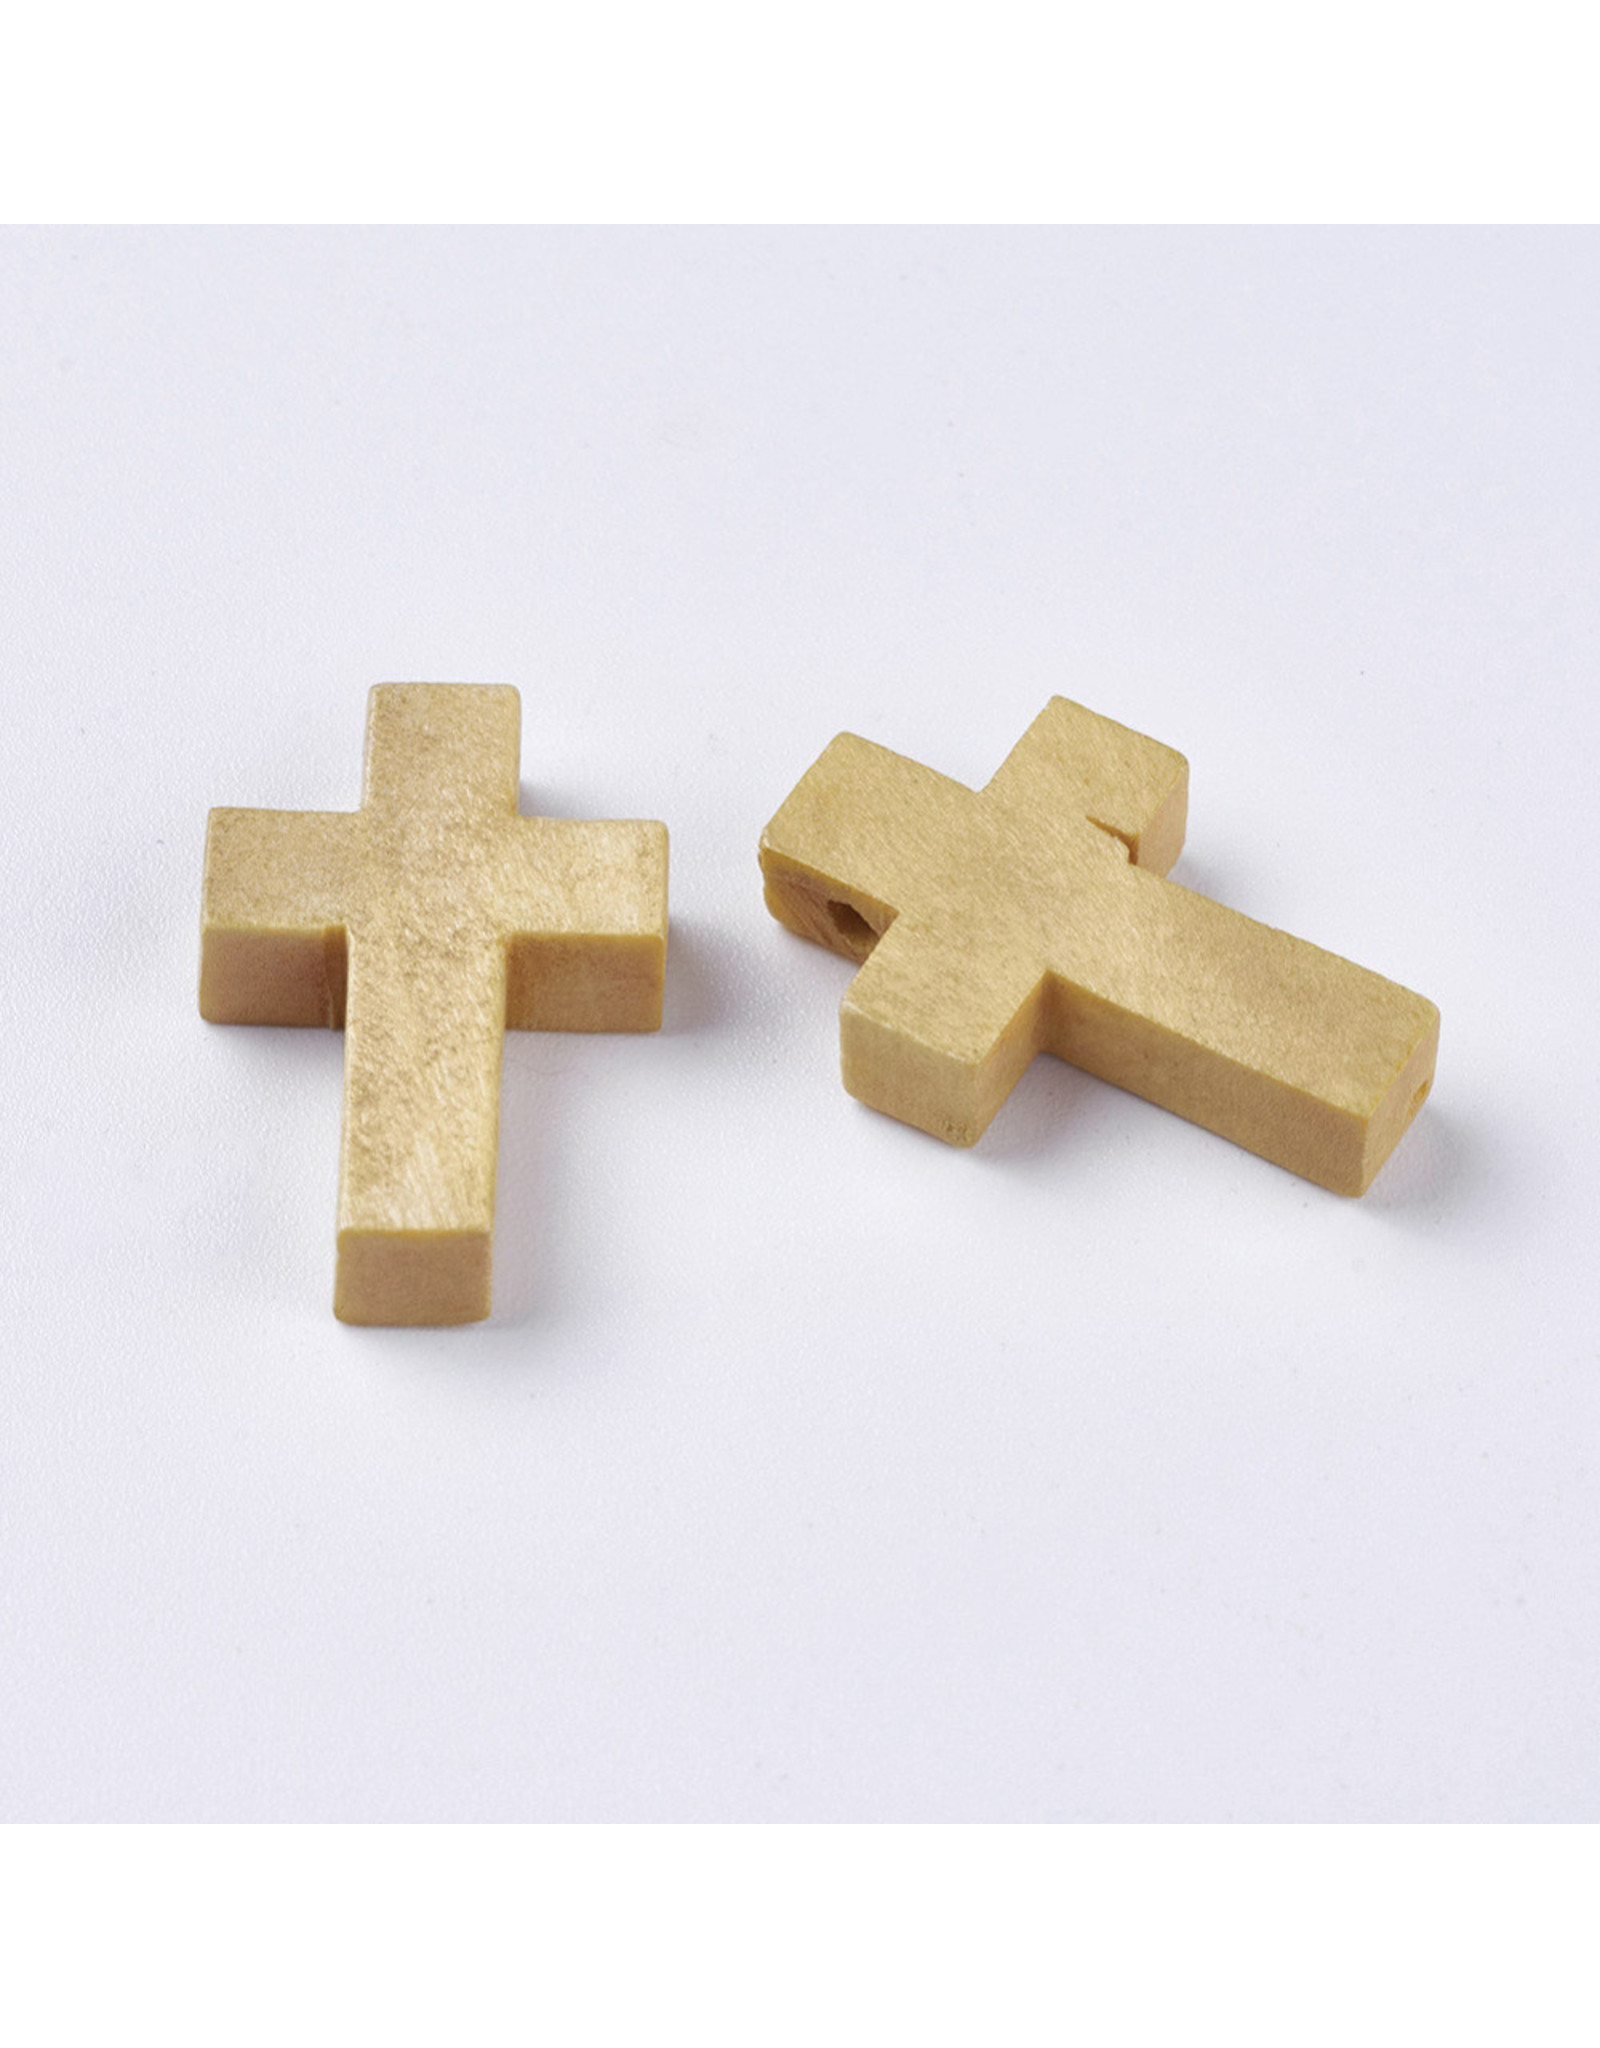 Cross 22x14mm Light Wood  x10